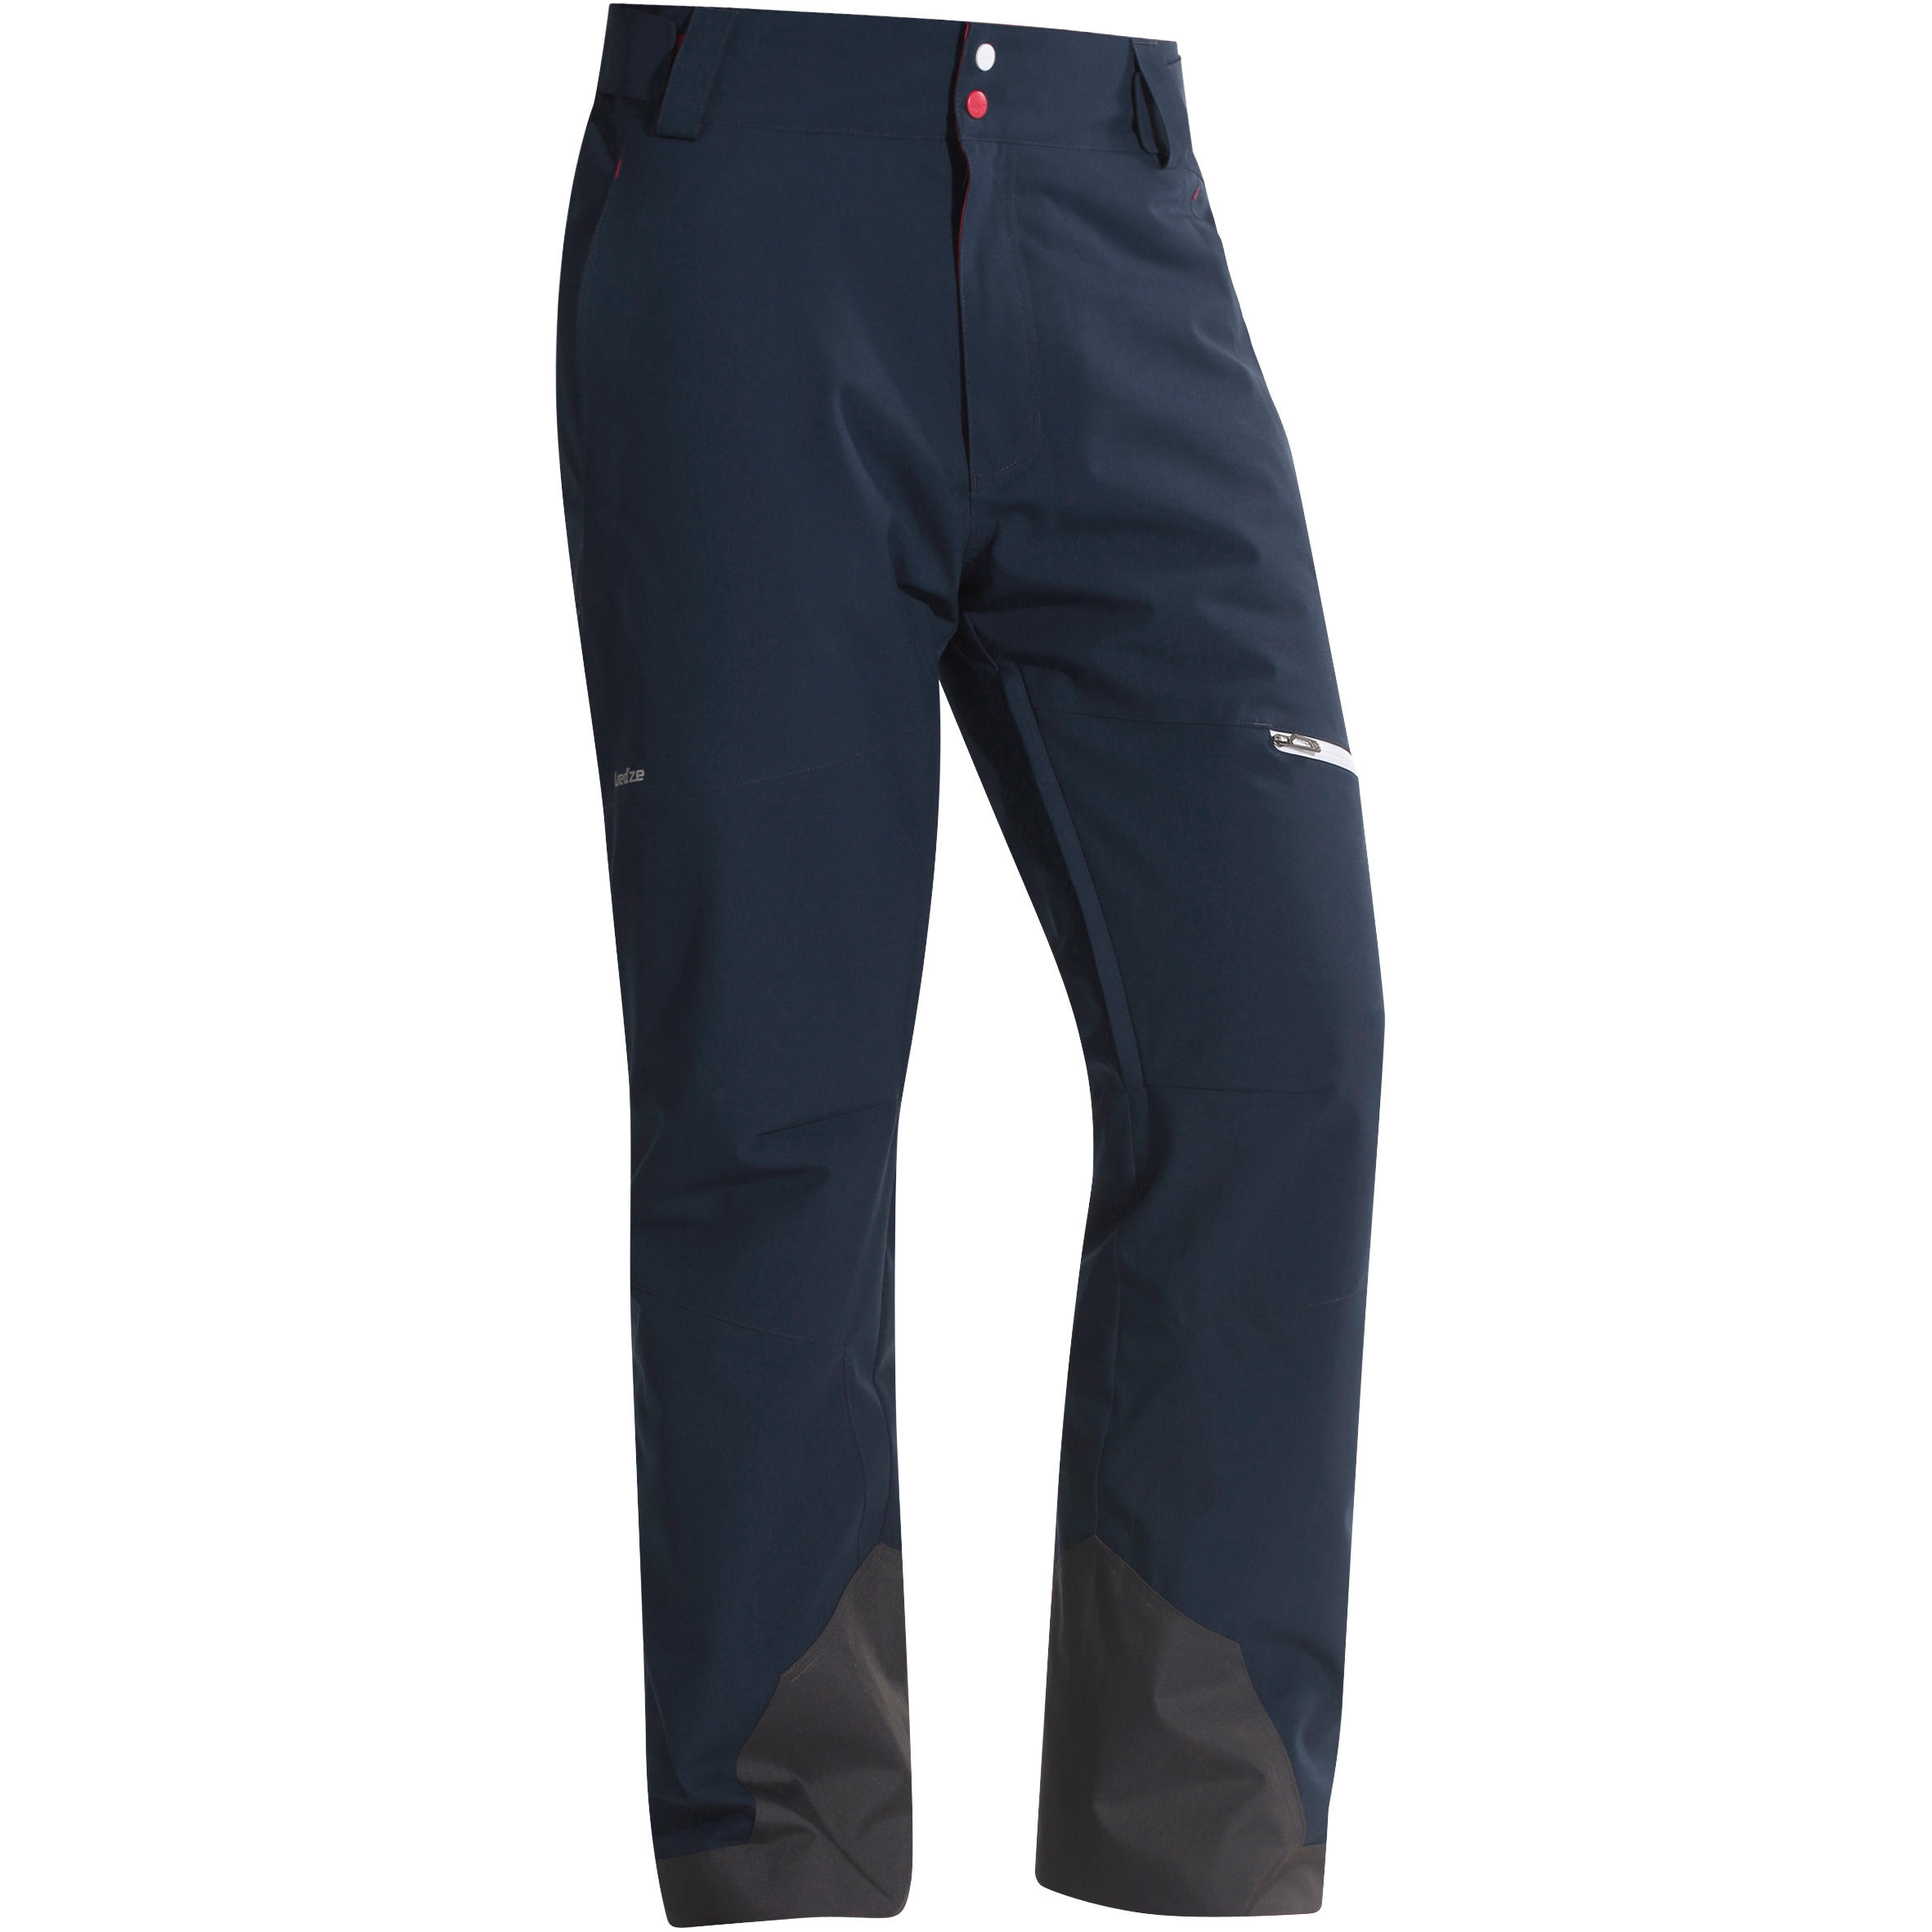 Ski-P PA 580 Men's Downhill Ski Pants - Navy